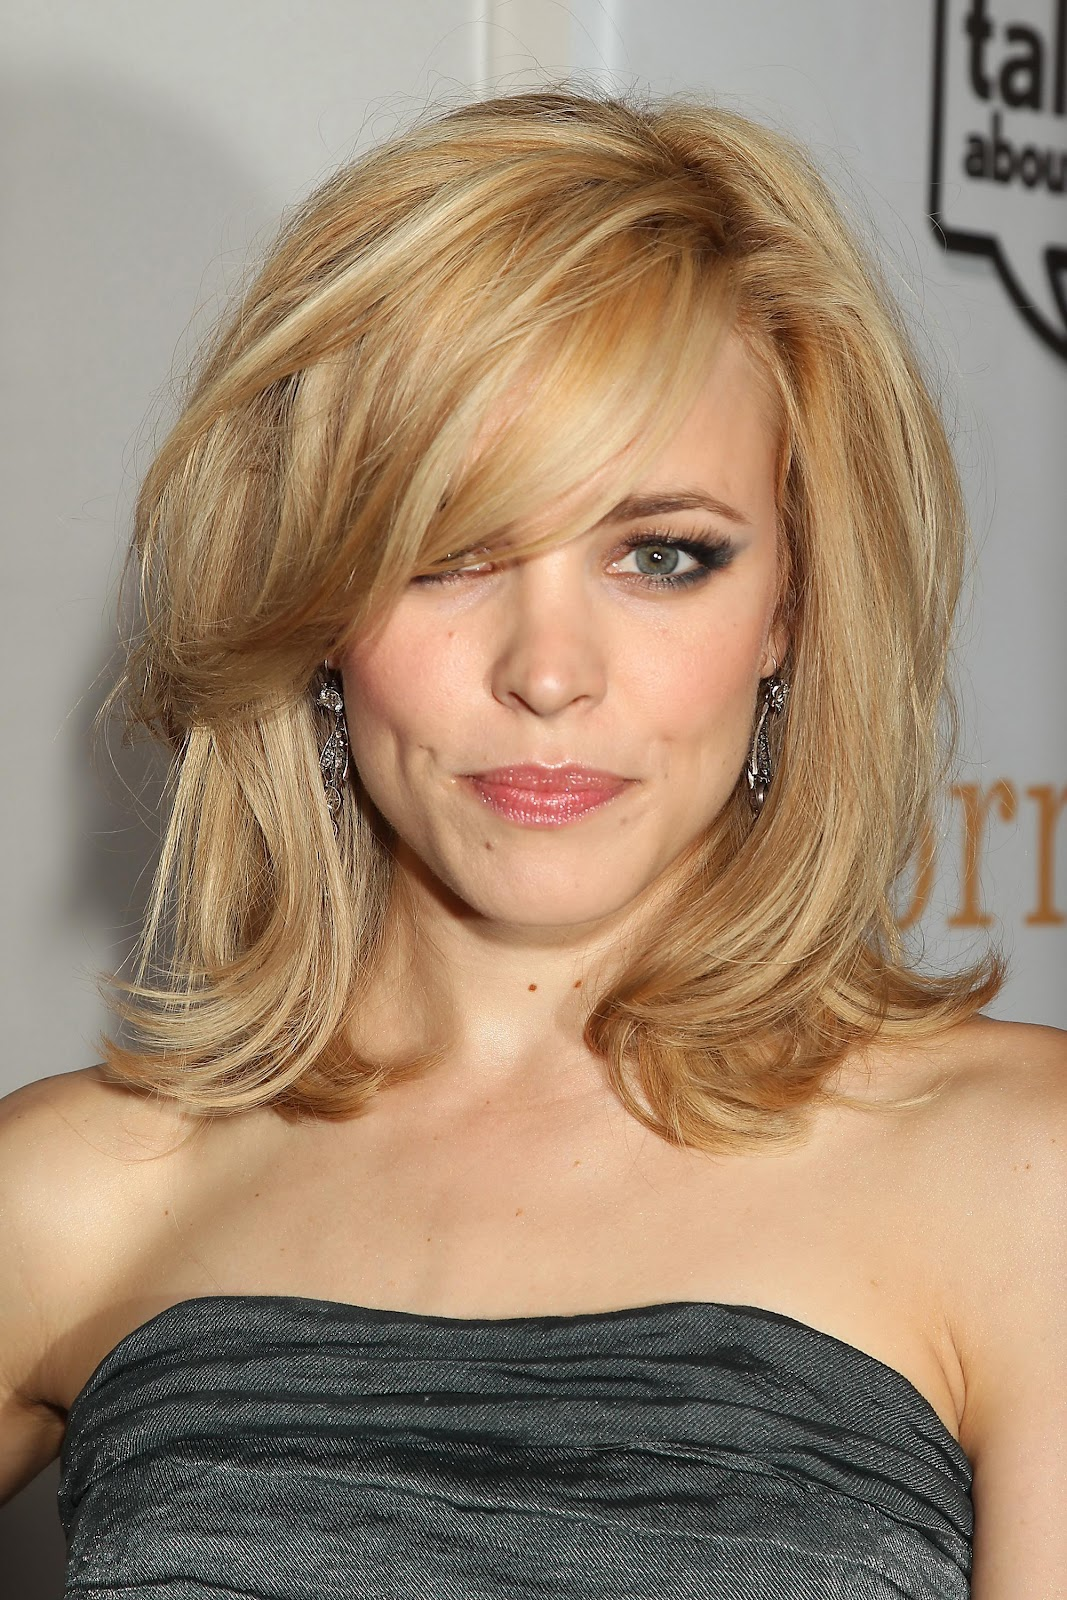 rachel mcadams pictures gallery 11 film actresses